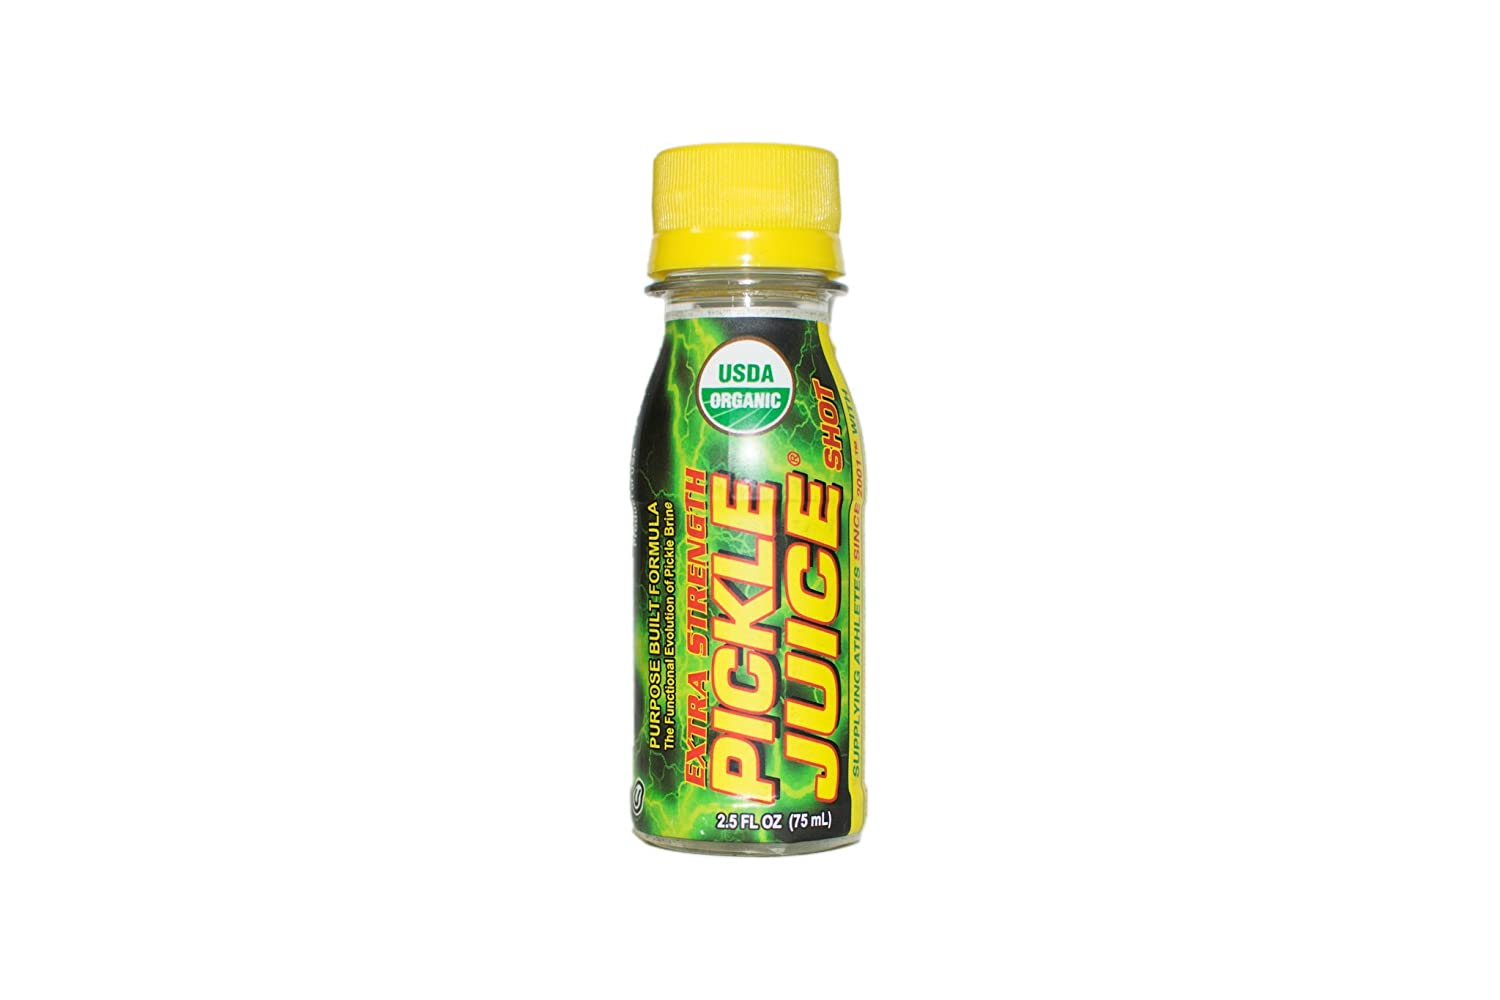 Pickle Juice Extra Strength Shots, 2 5 oz, 12 pack